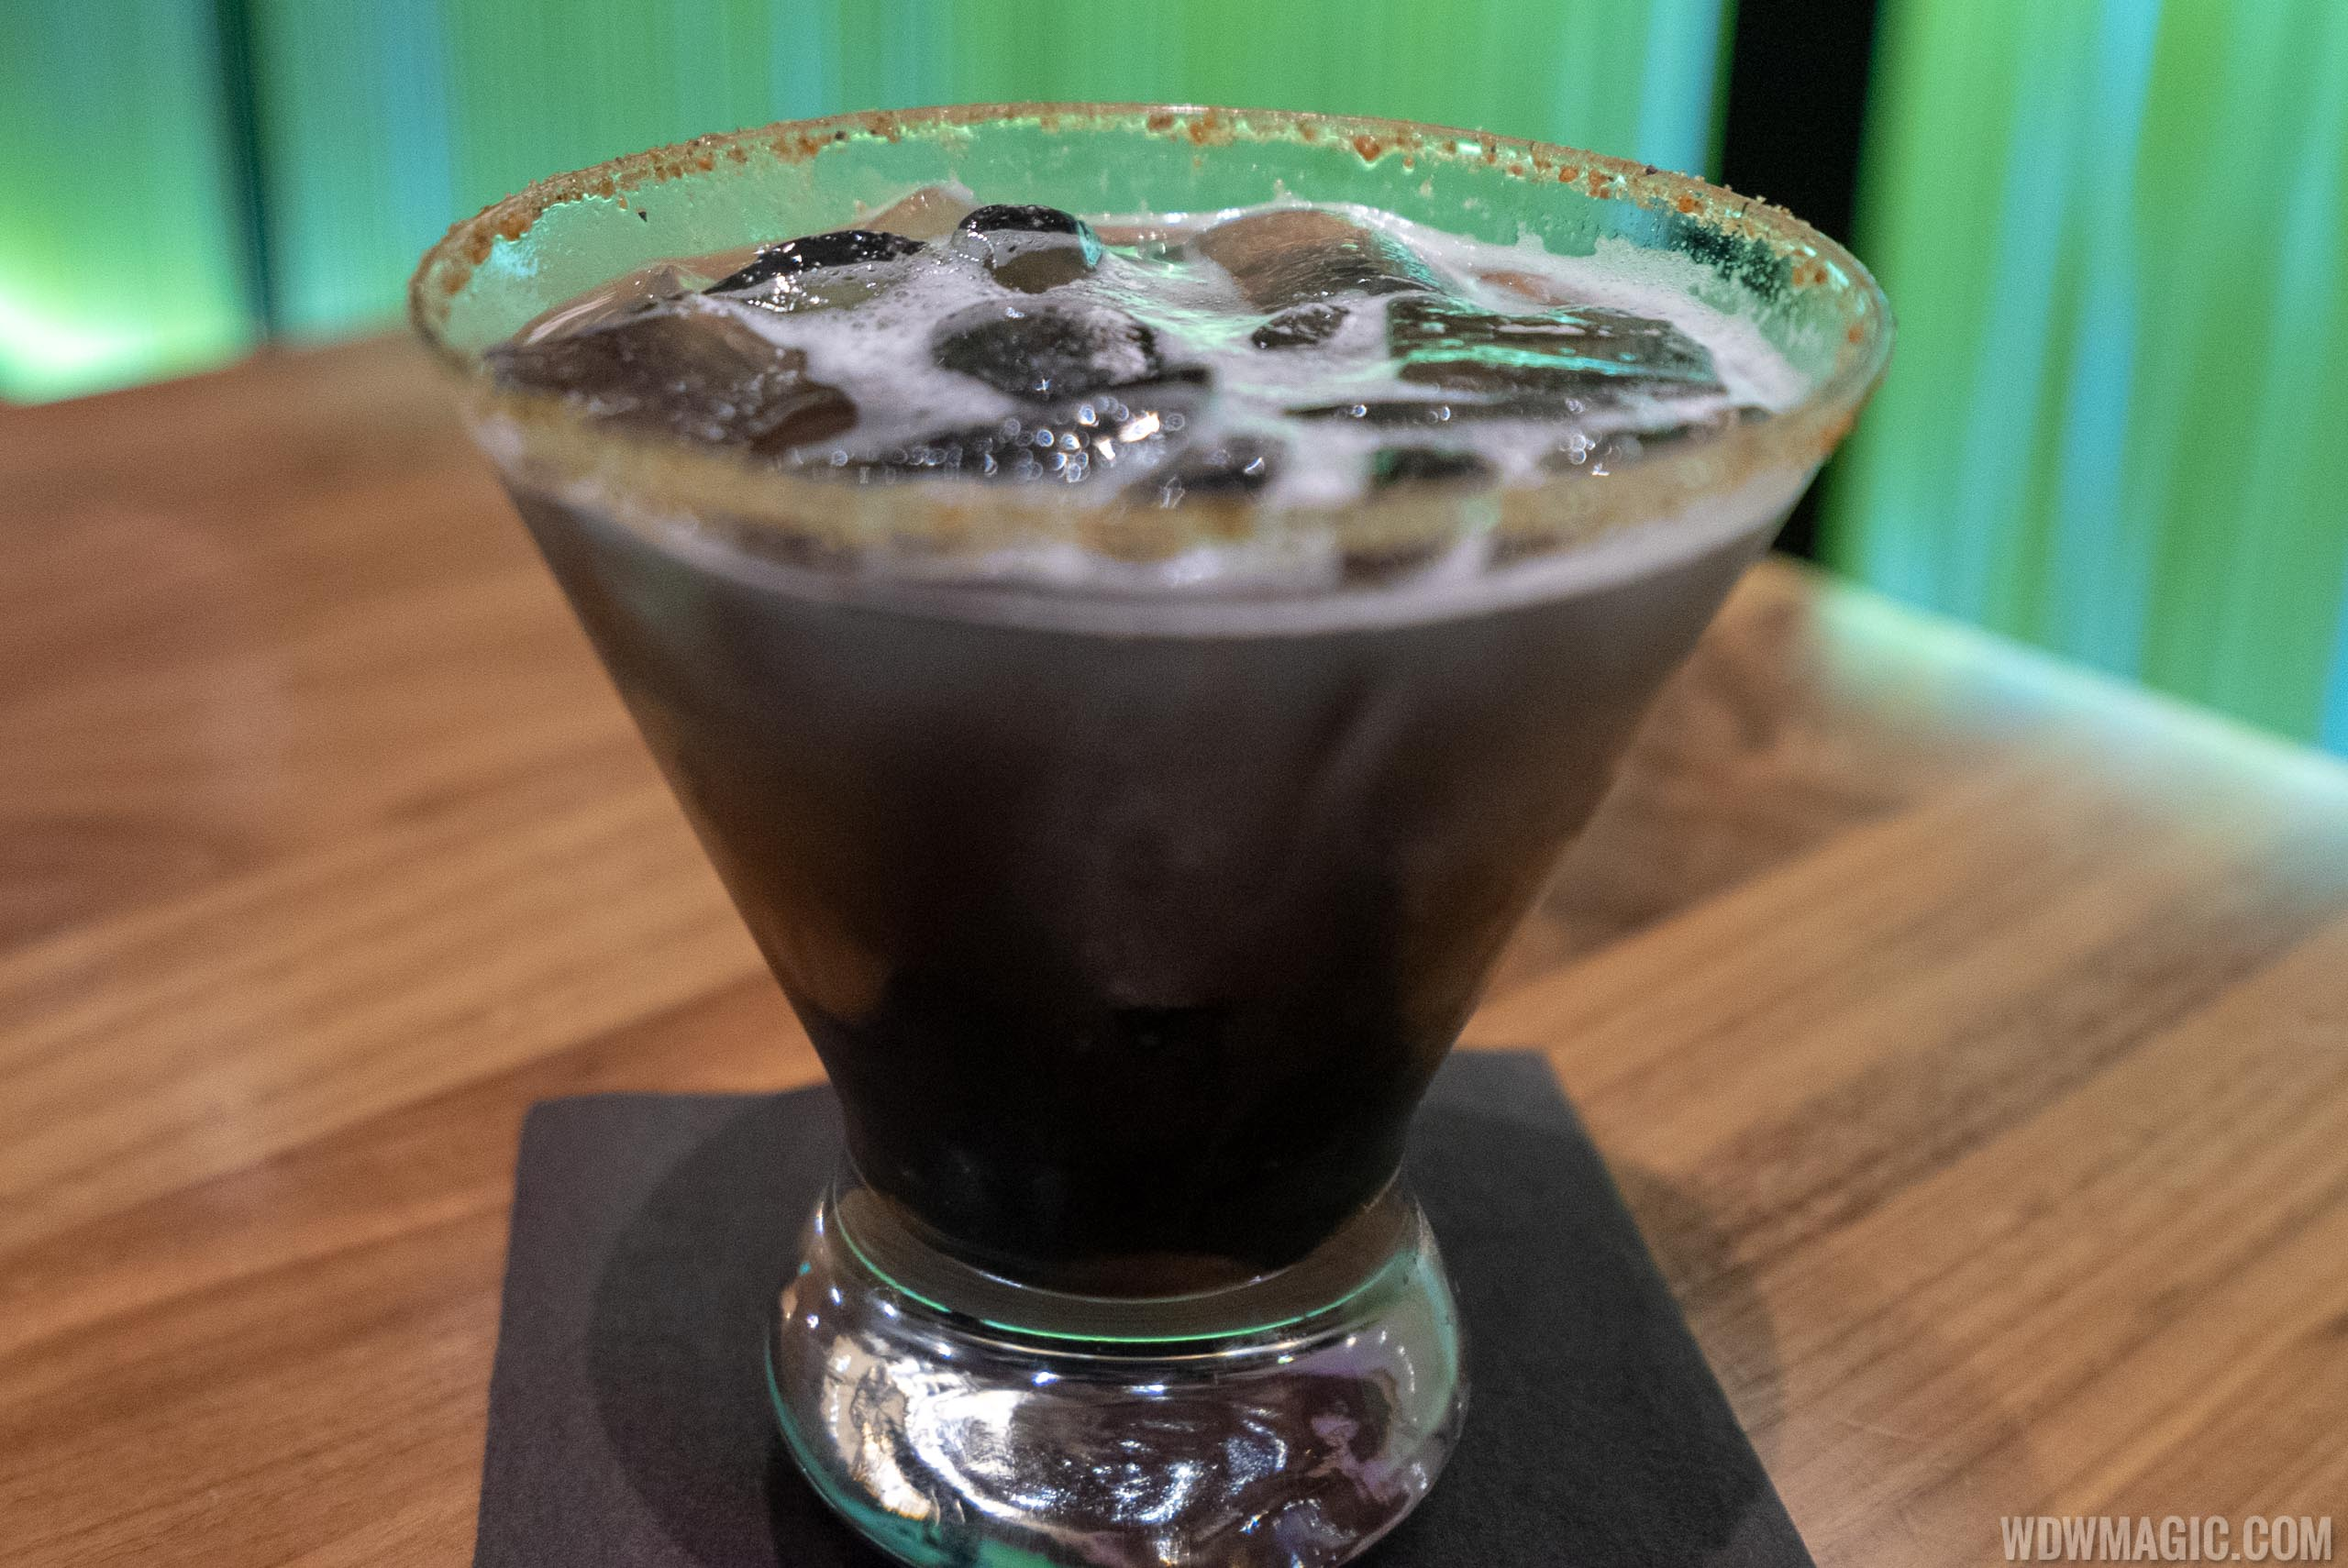 Frontera Cocina - Taste of Mexico City - Dark Aztec Margarita